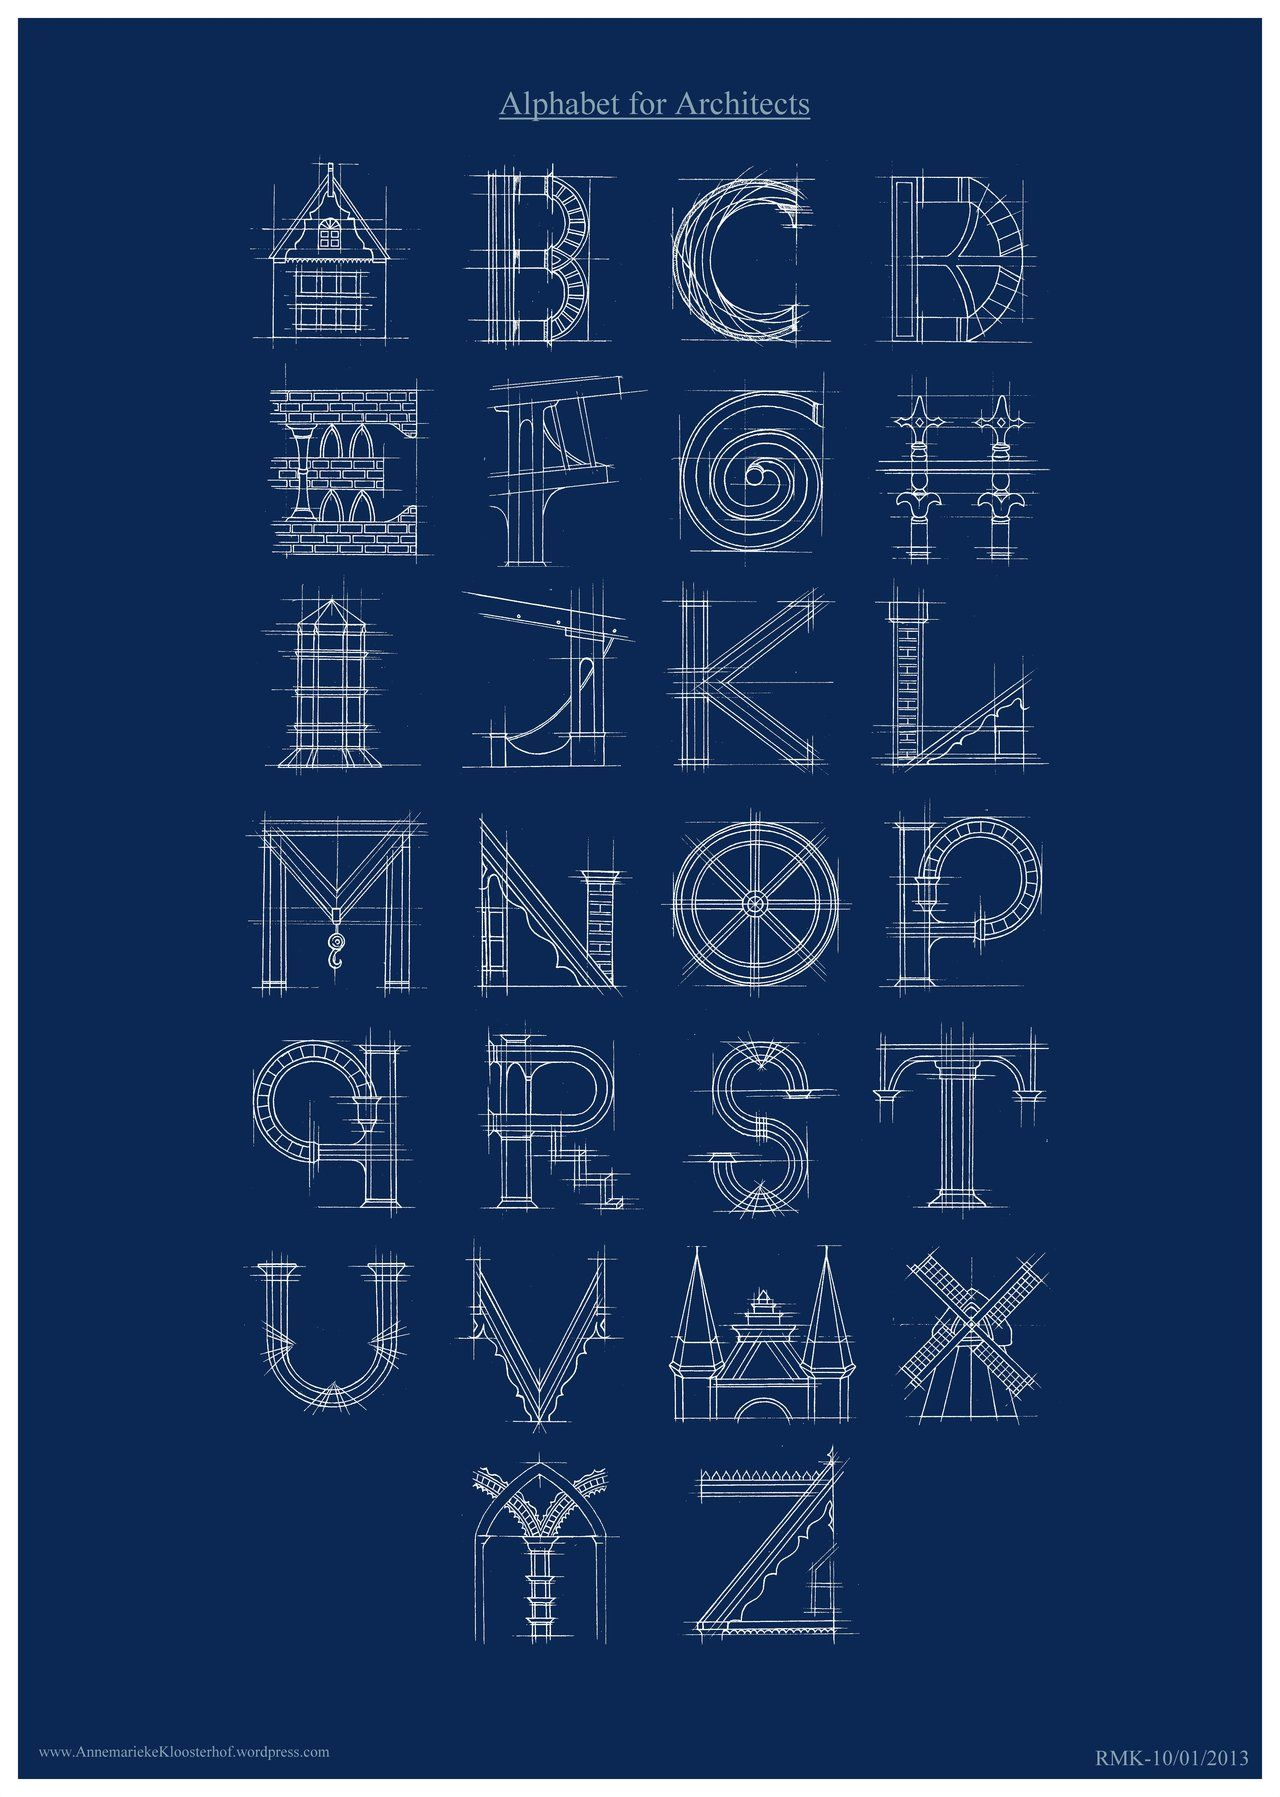 Alphabet for architects by rose ann mary k on deviantart arch alphabet for architects by rose ann mary k on deviantart malvernweather Gallery